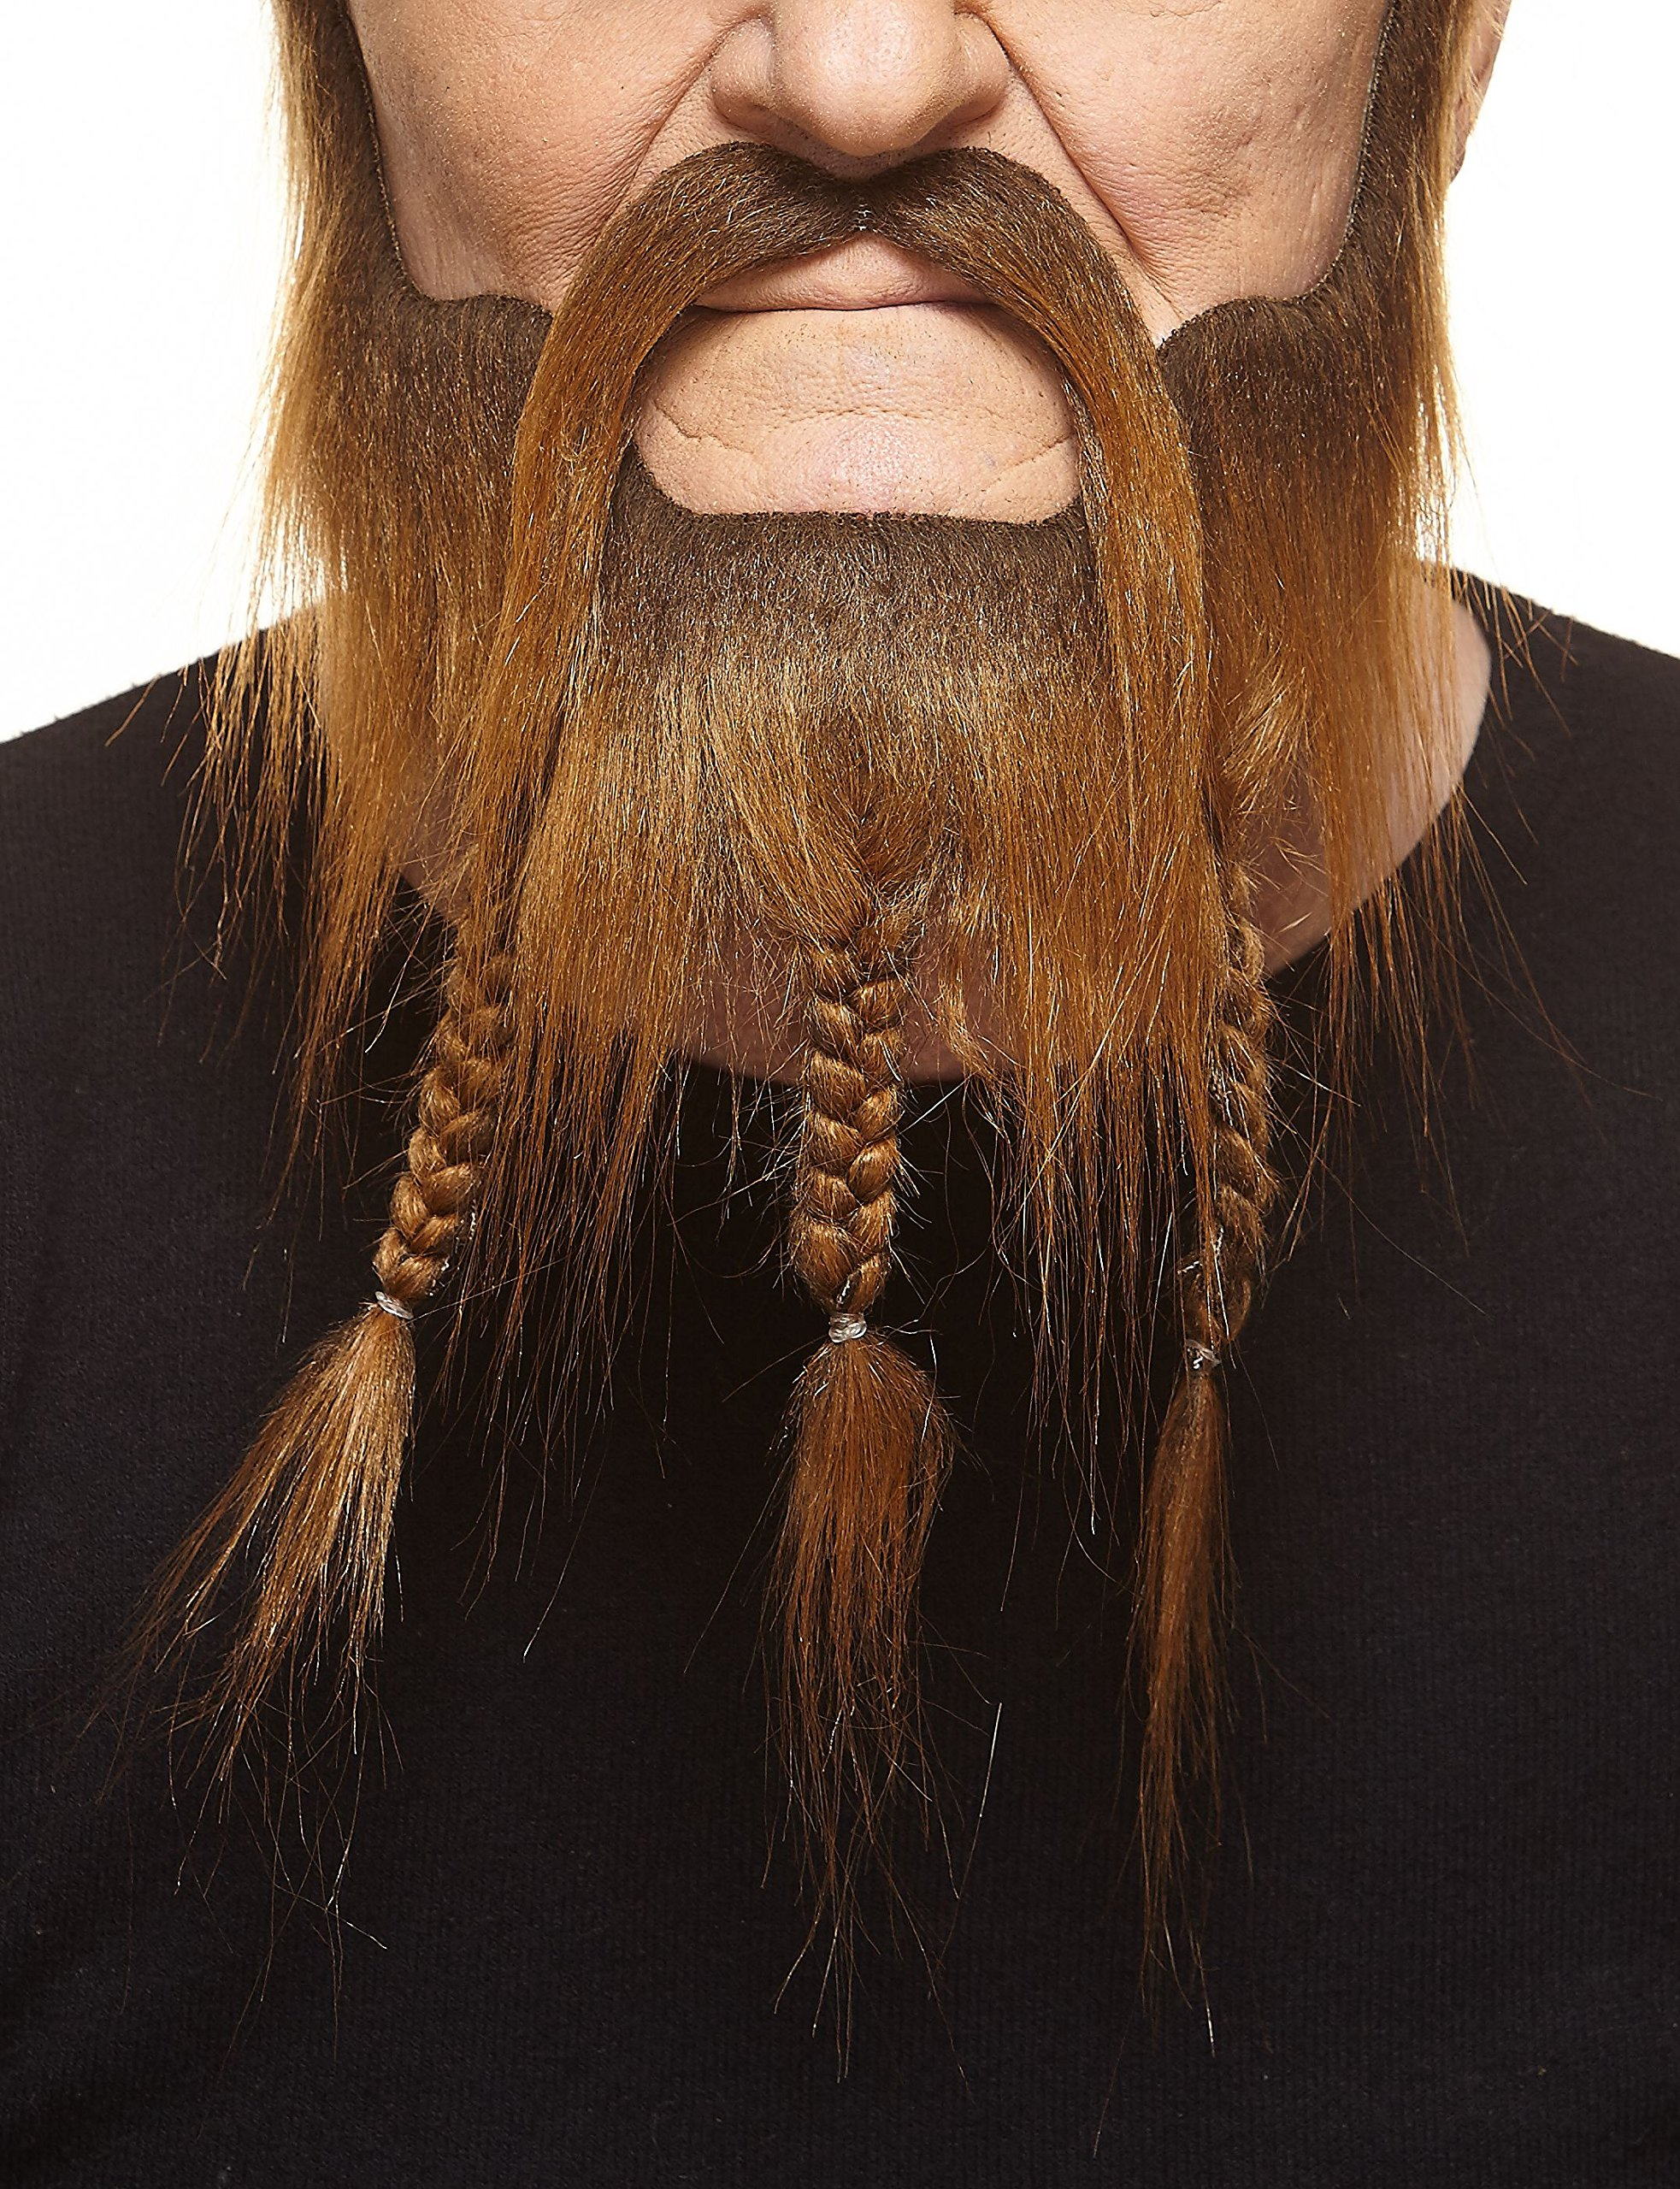 Mustaches Self Adhesive, Novelty, Braided, Captain Fake Beard and Fake Mustache